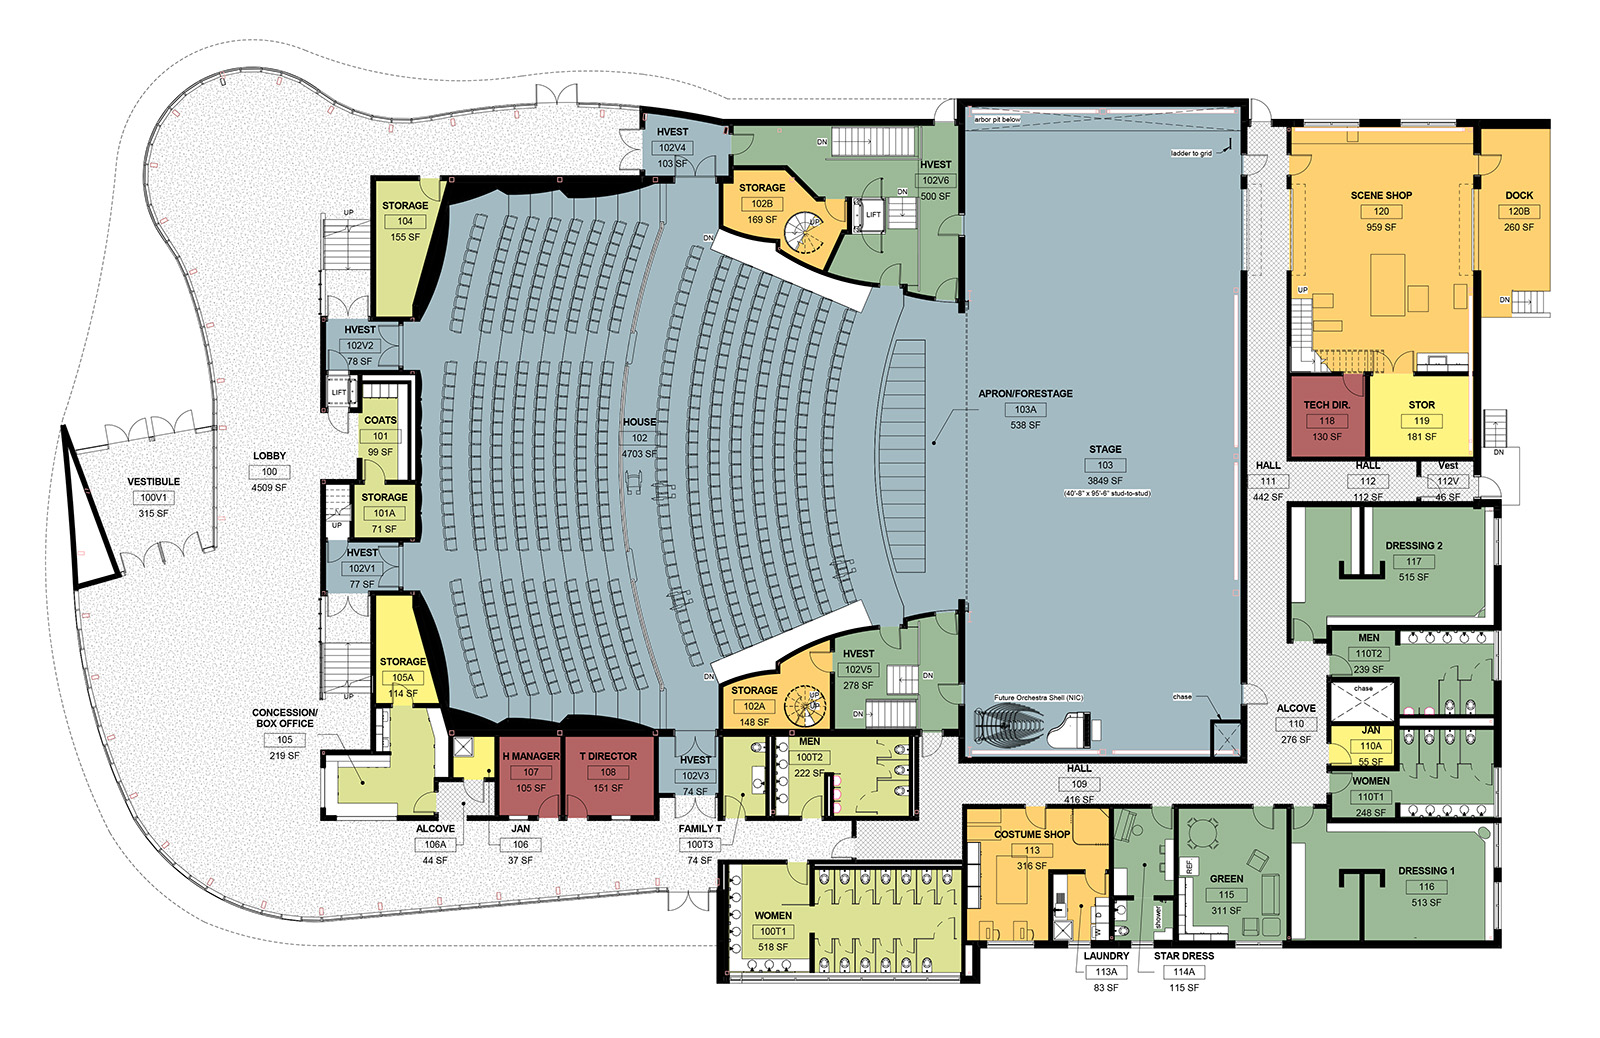 Glenn Massay Theater Floorplan